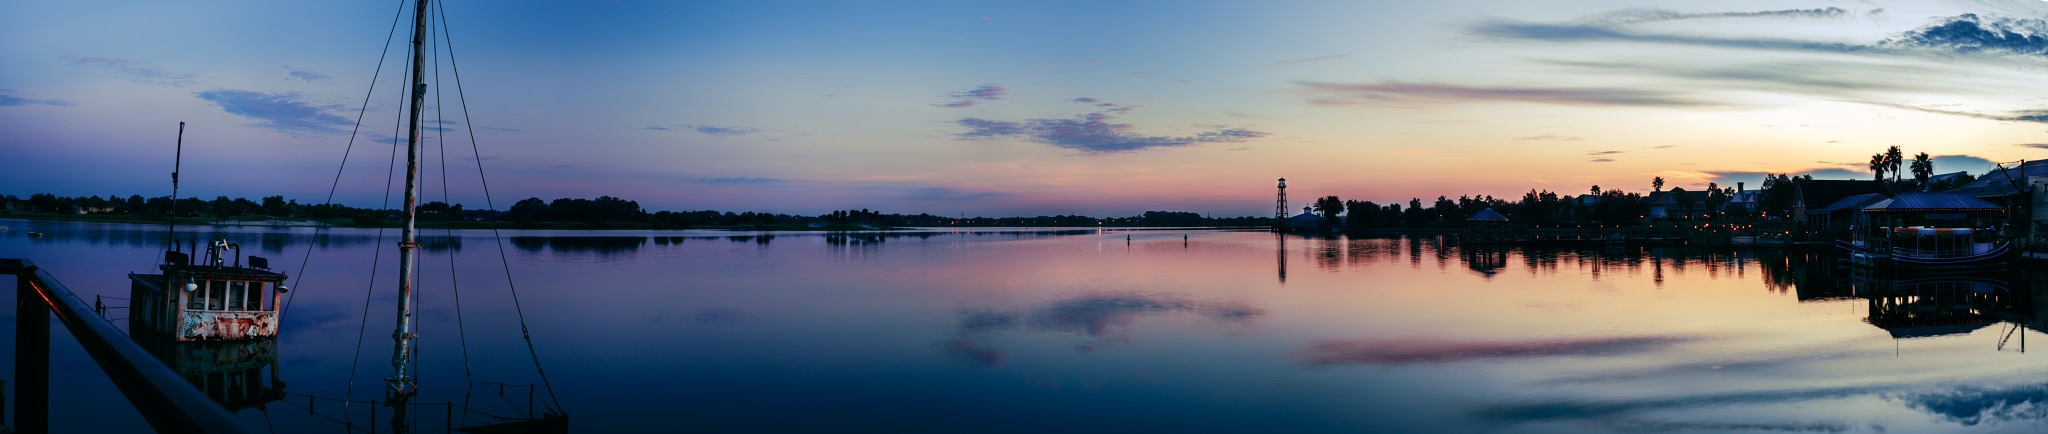 Sunrise panorama by Bryan L. Williams